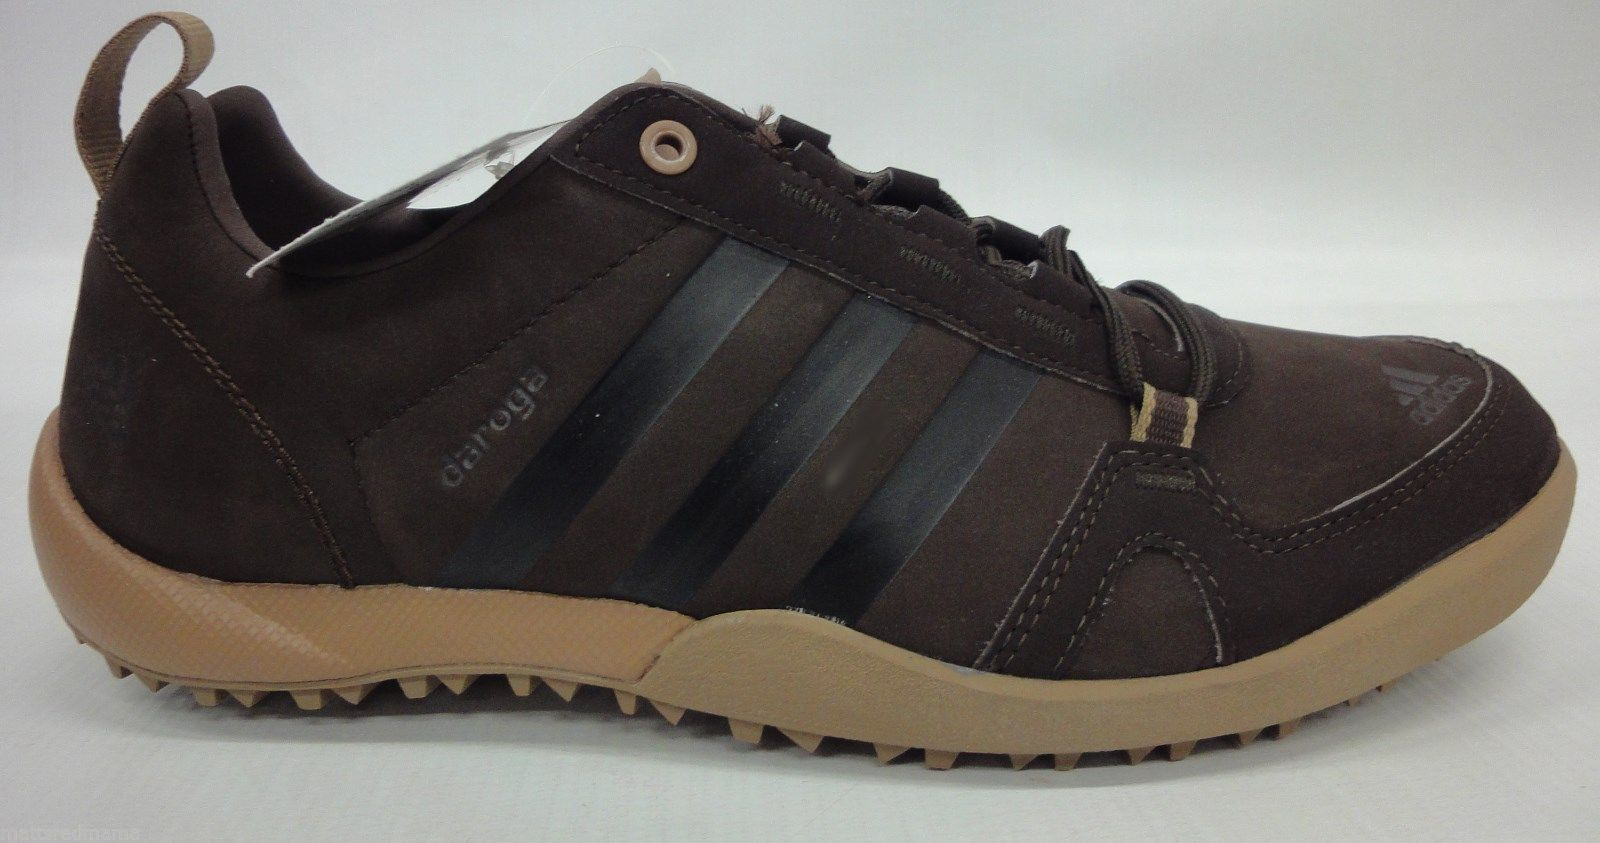 Adidas Mens Daroga Two 11 Shoes G97028 Mustang Brown/Craft Canvas ...